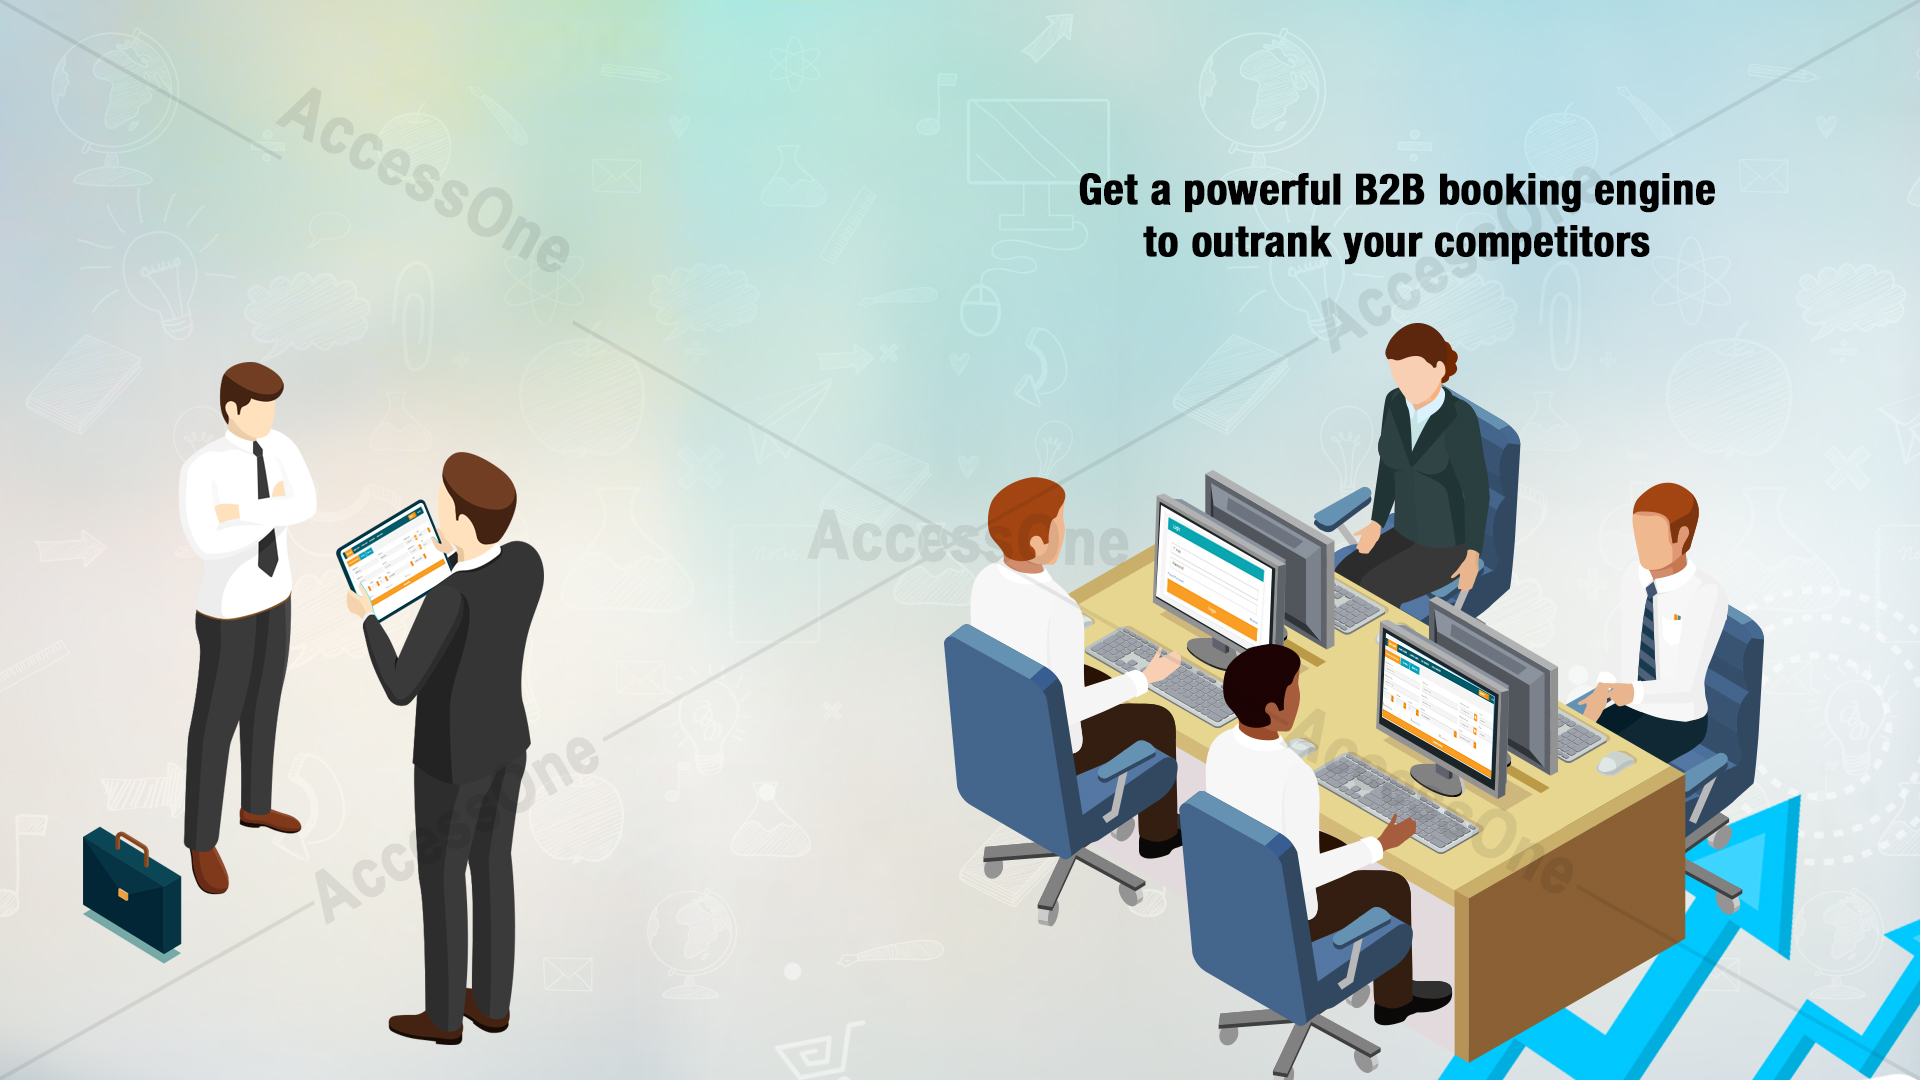 B2B Booking engine